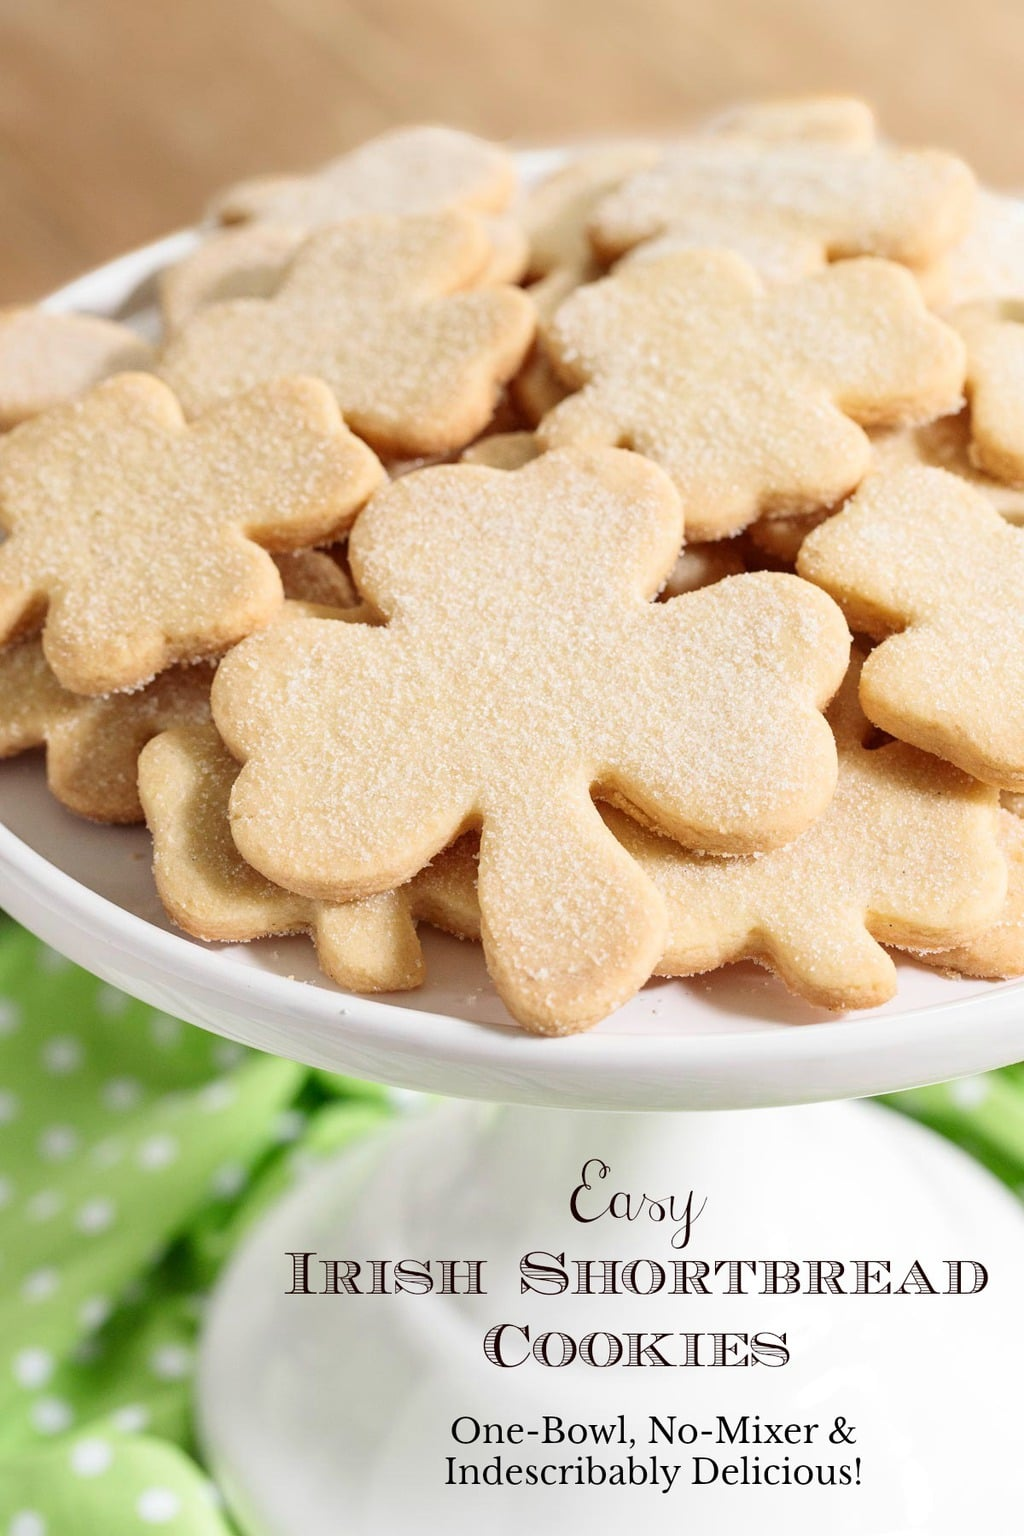 These crisp, buttery melt-in-your-mouth delicious Irish Shortbread Cookies require just one bowl and no mixer! They come together quickly and disappear even quicker so make plenty! #irishshortbread, #easyshortbread, #onebowlnomixershortbread, #bestshortbread